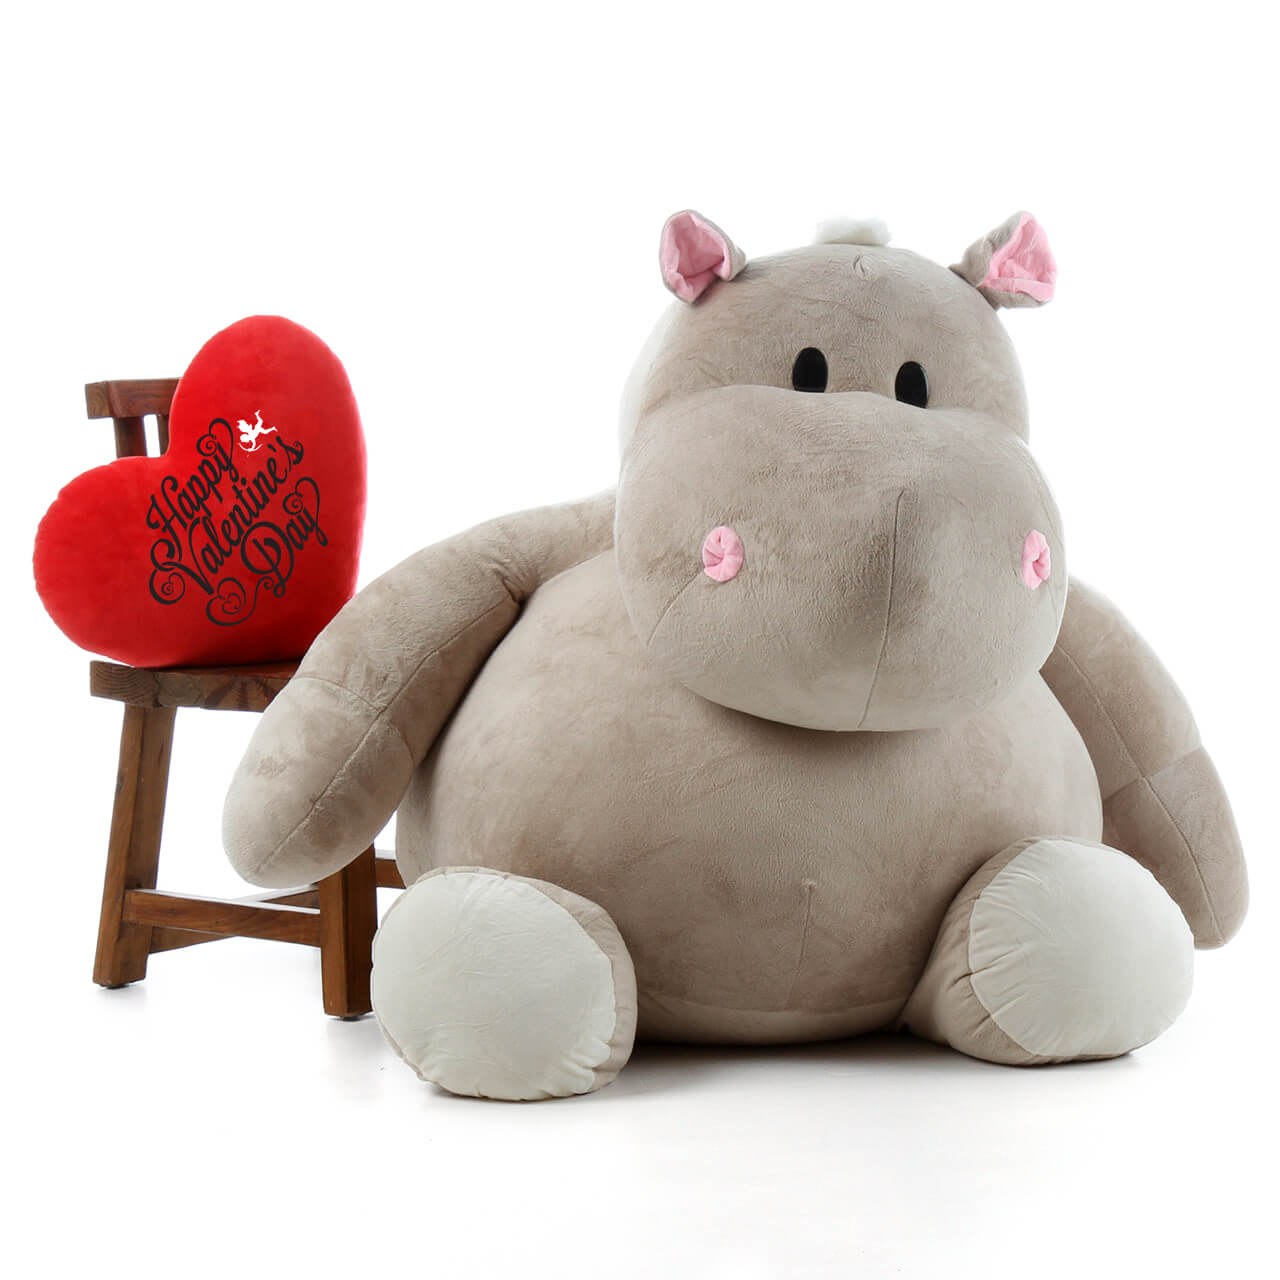 54-inch-giant-teddy-brand-giant-hippo-with-happy-valentine-s-day-heart.jpg